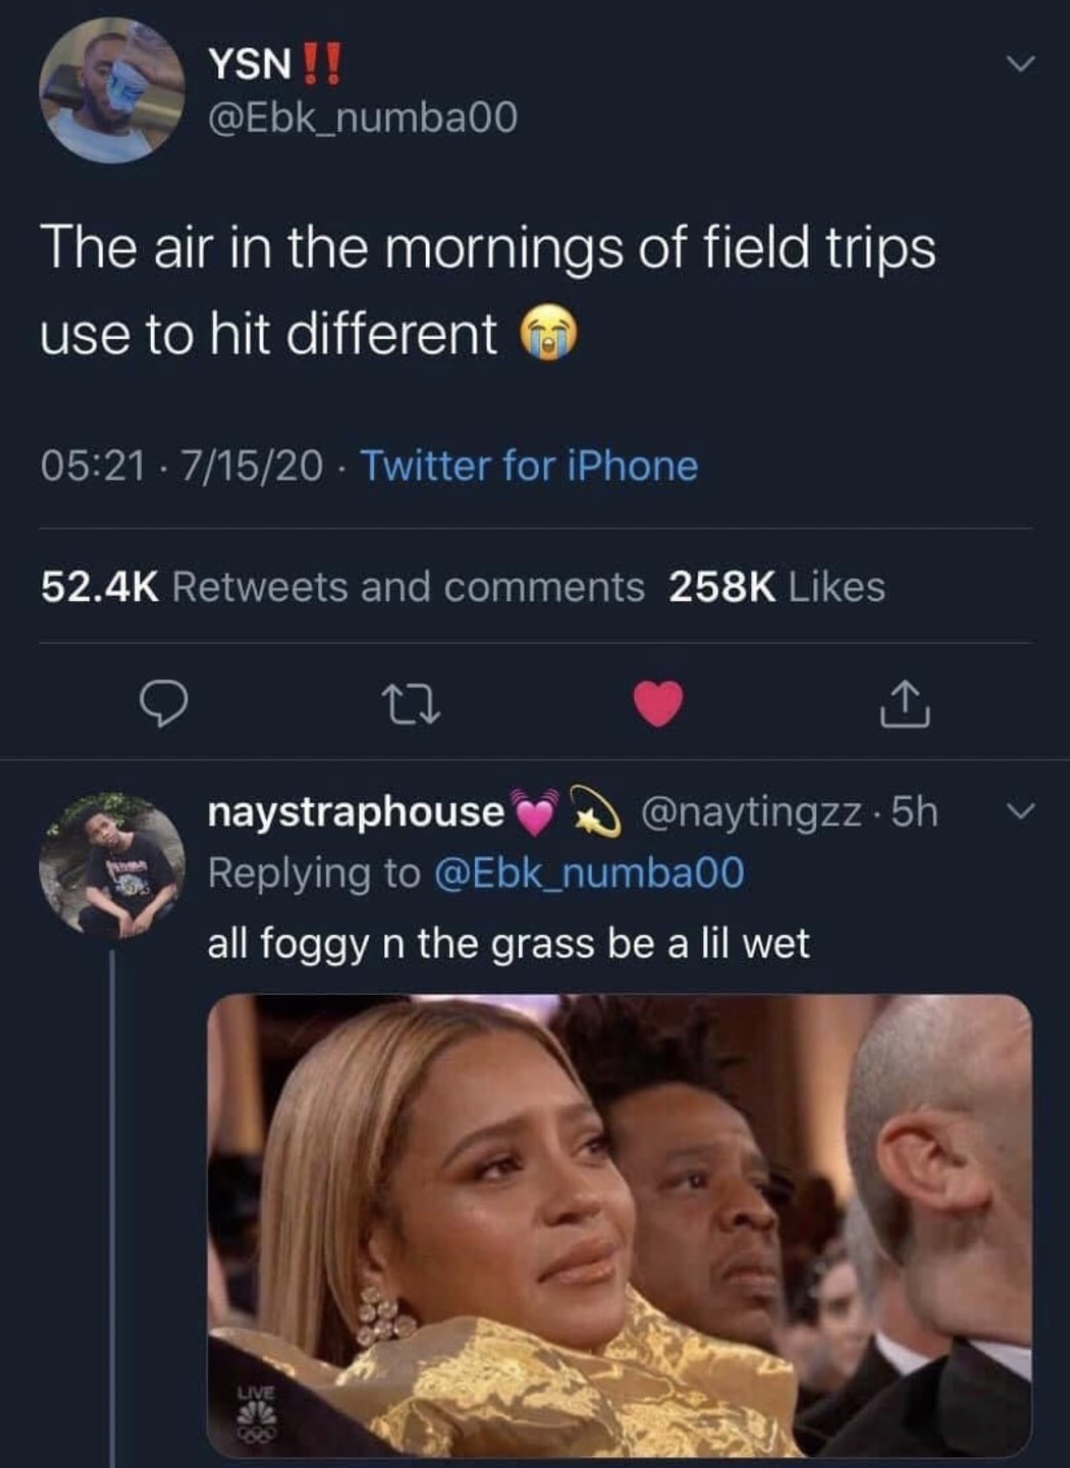 tweet reading the air on the morning of field trips hit different